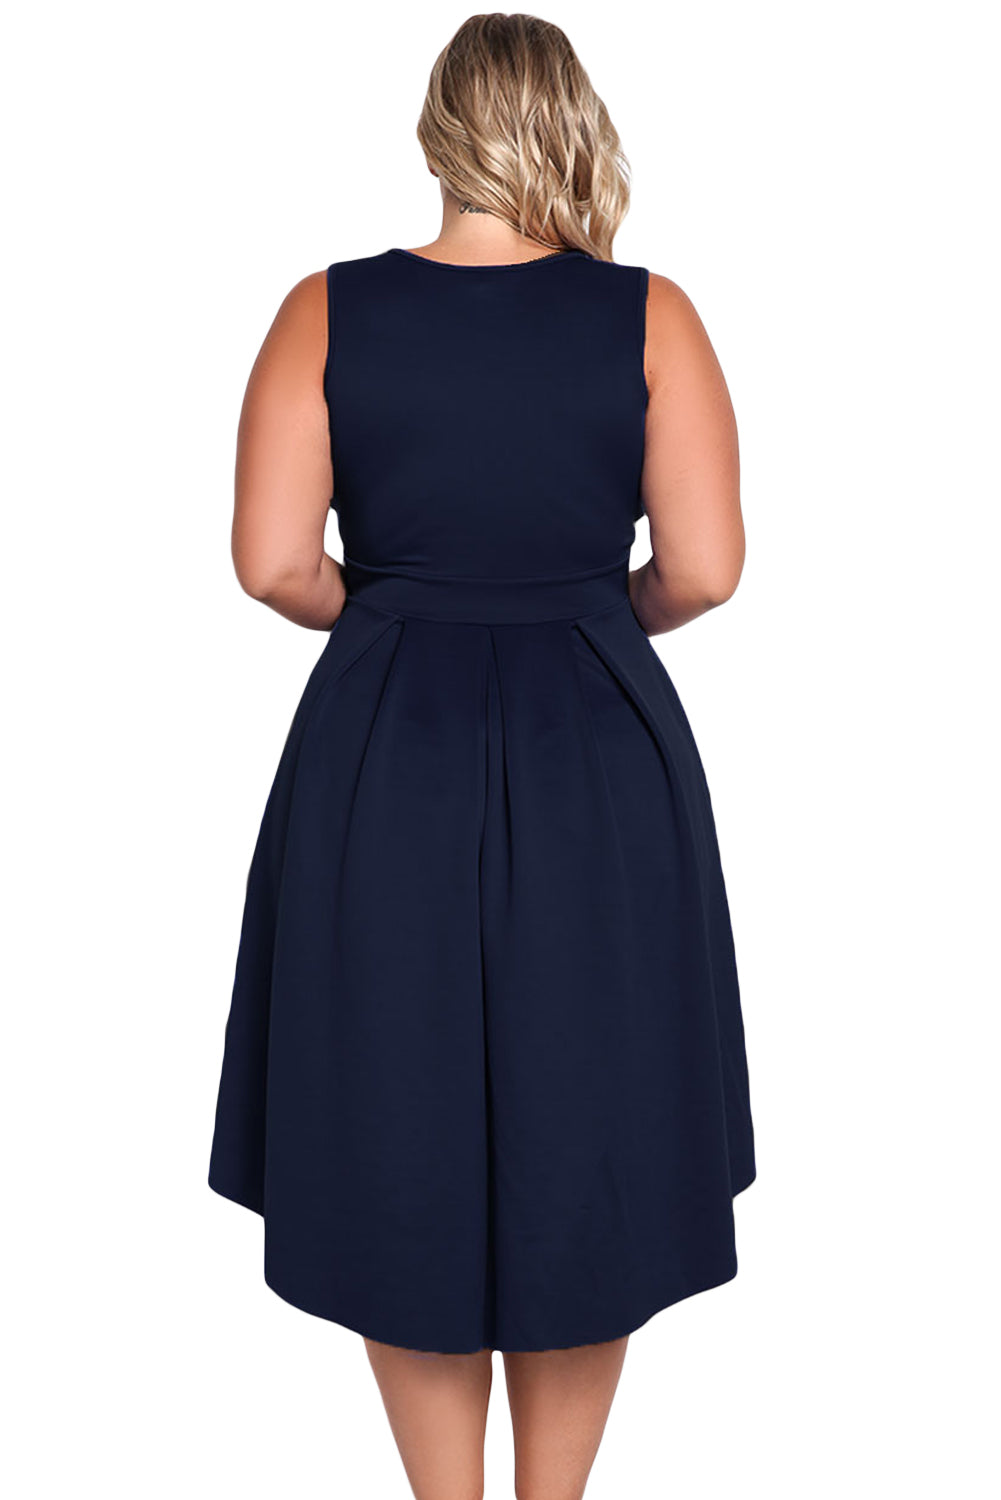 Navy Sleeveless V Neck Plus Size Hi-lo Dress